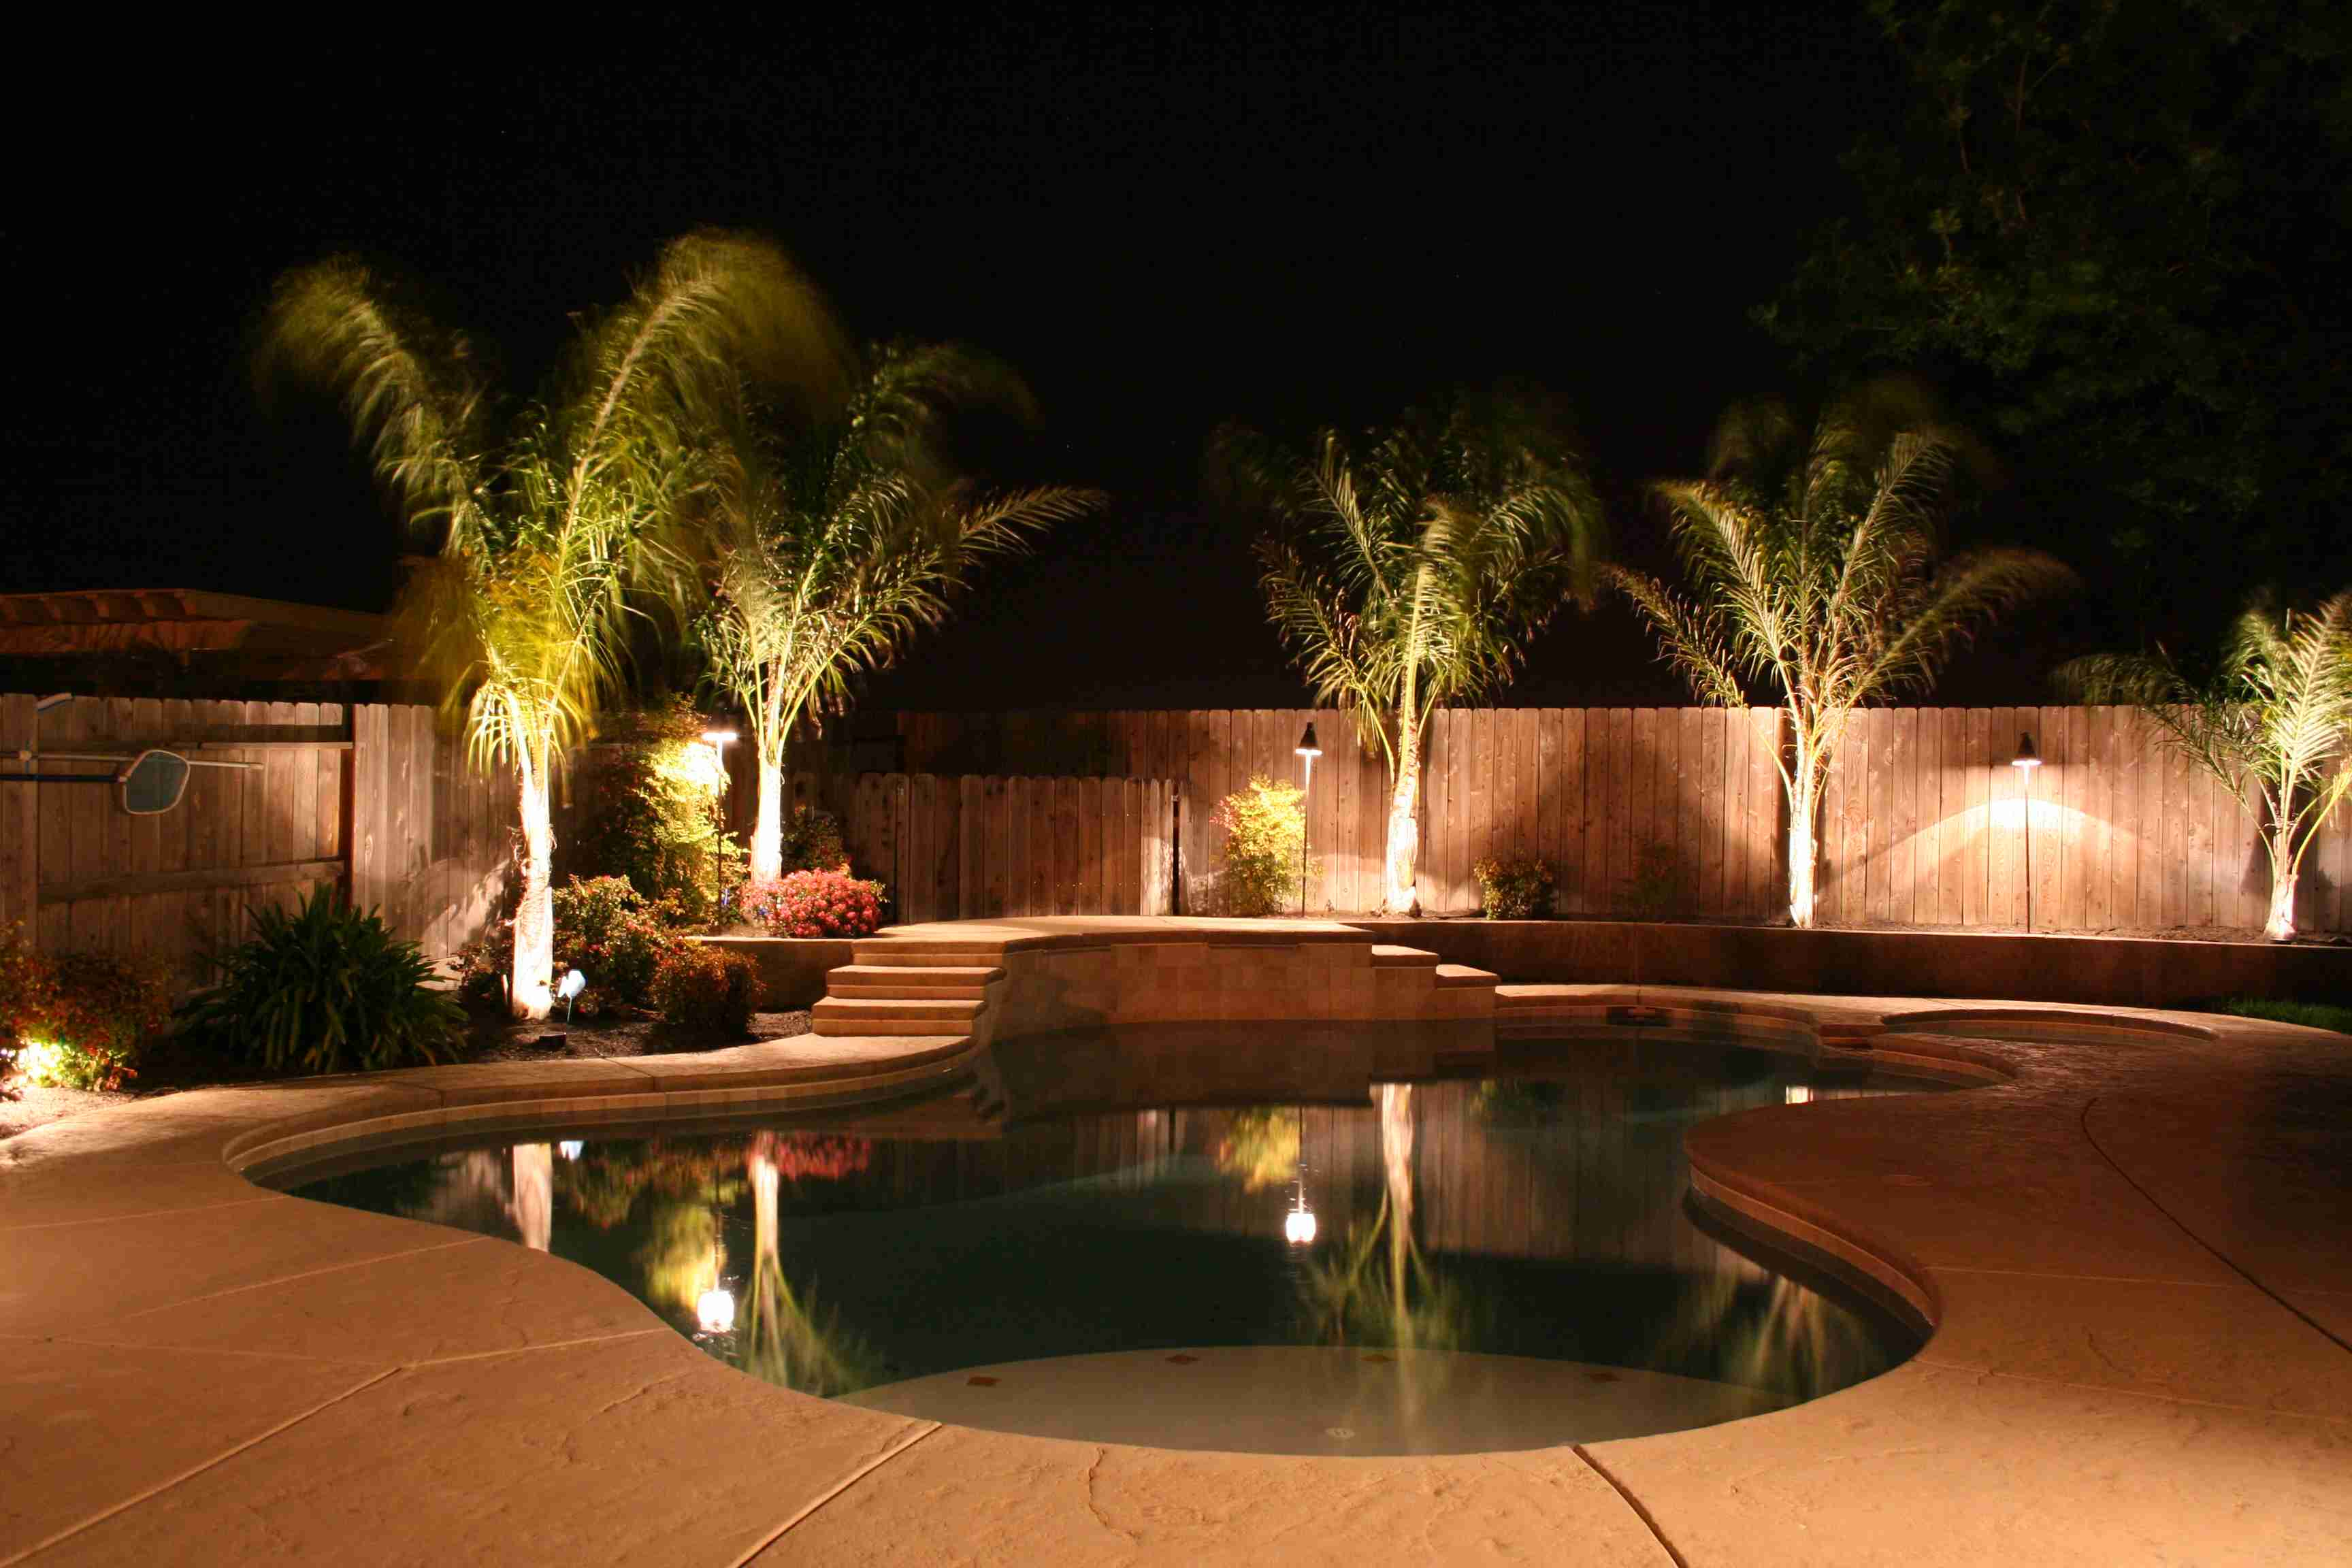 Outdoor lighting ideas that add style to the home